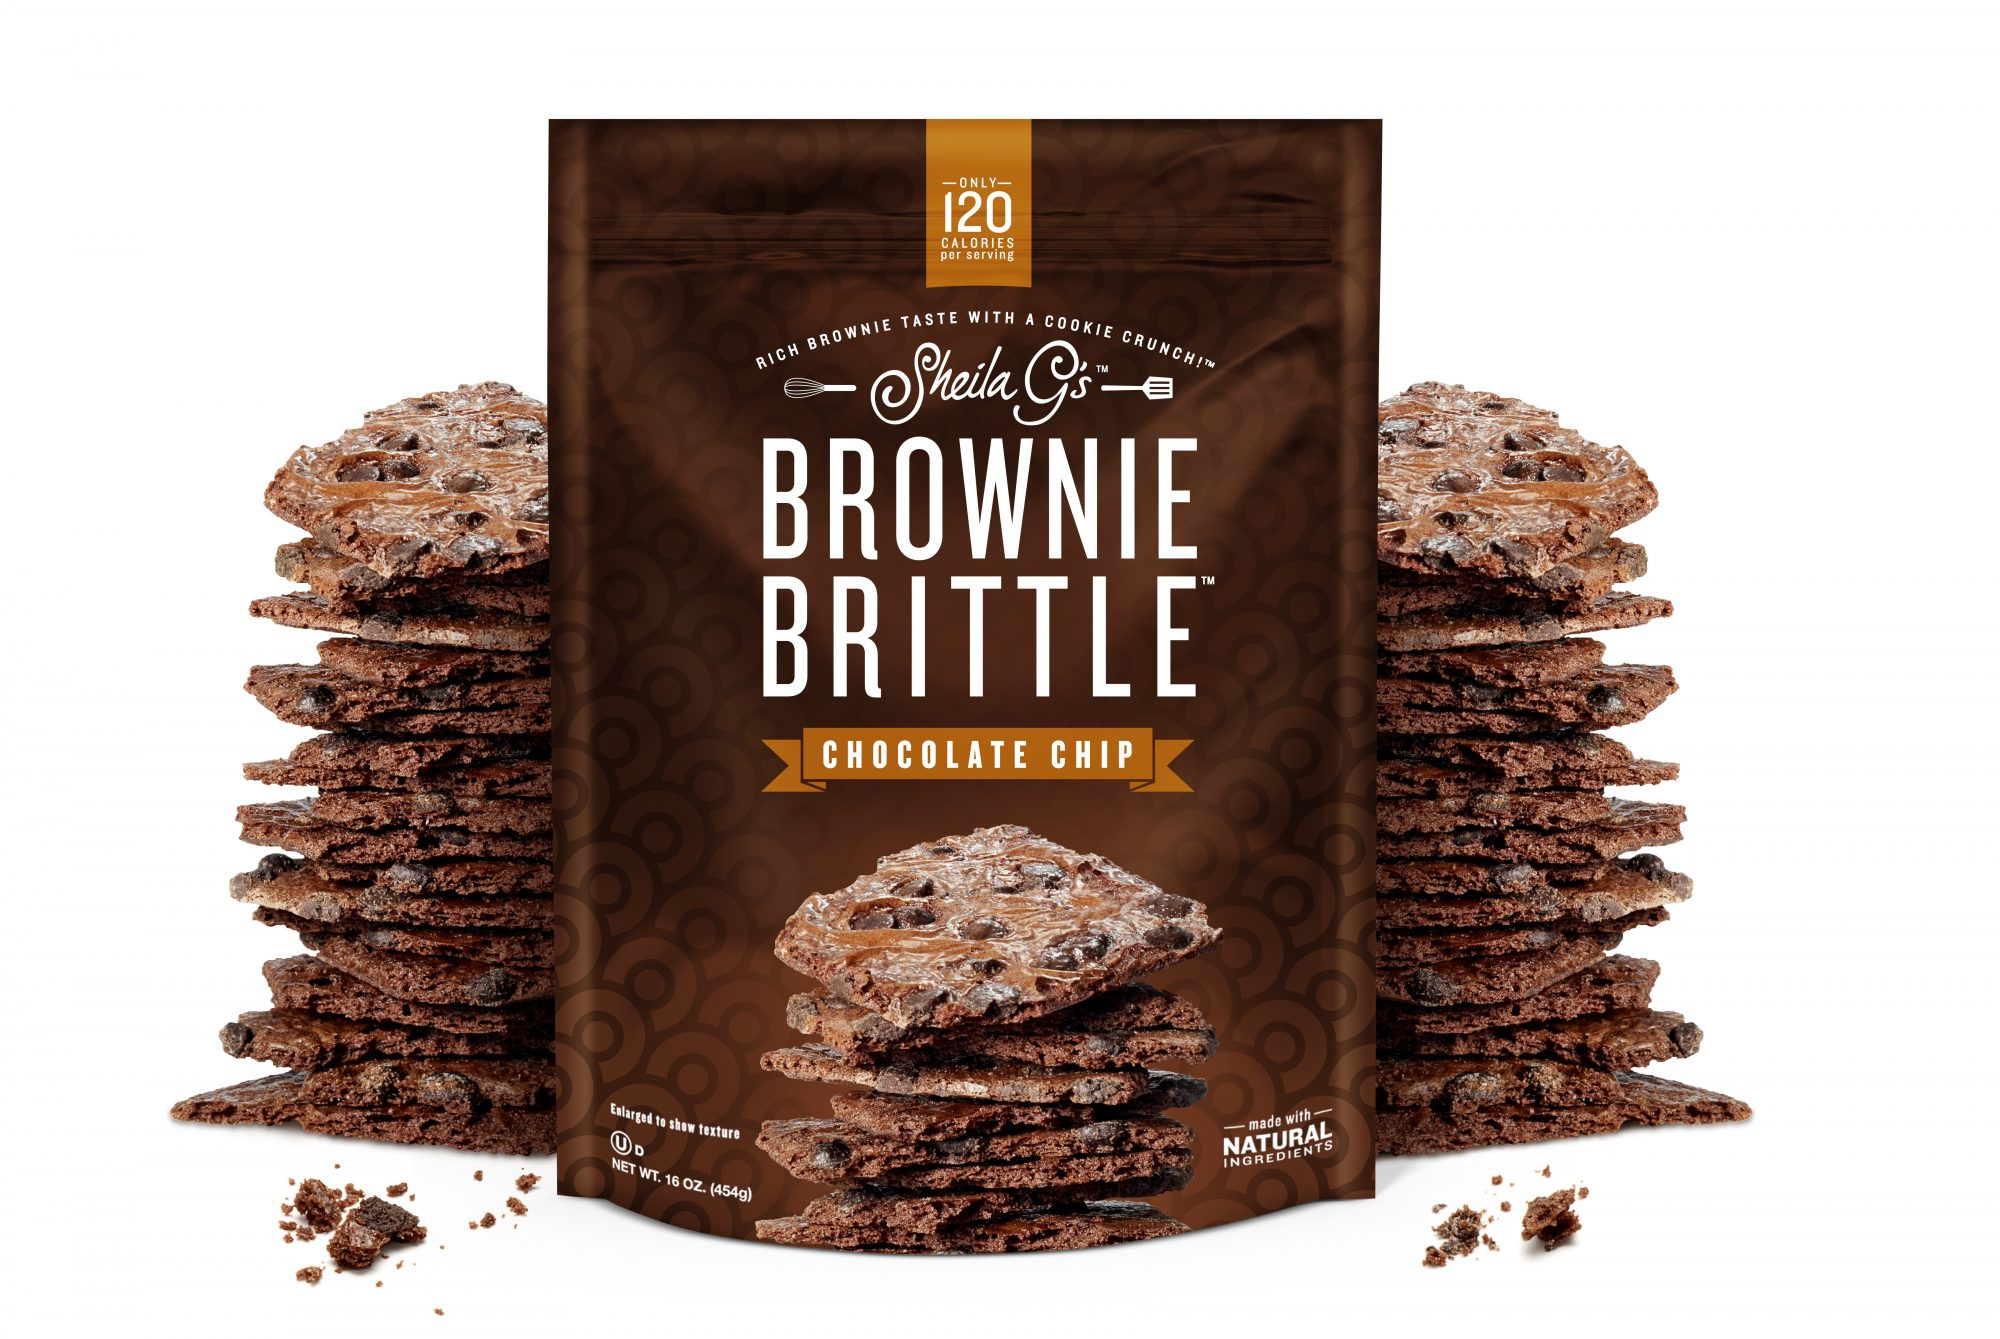 new-bb-choc-chip-4oz-package-w-stacks-03-17-14.jpg